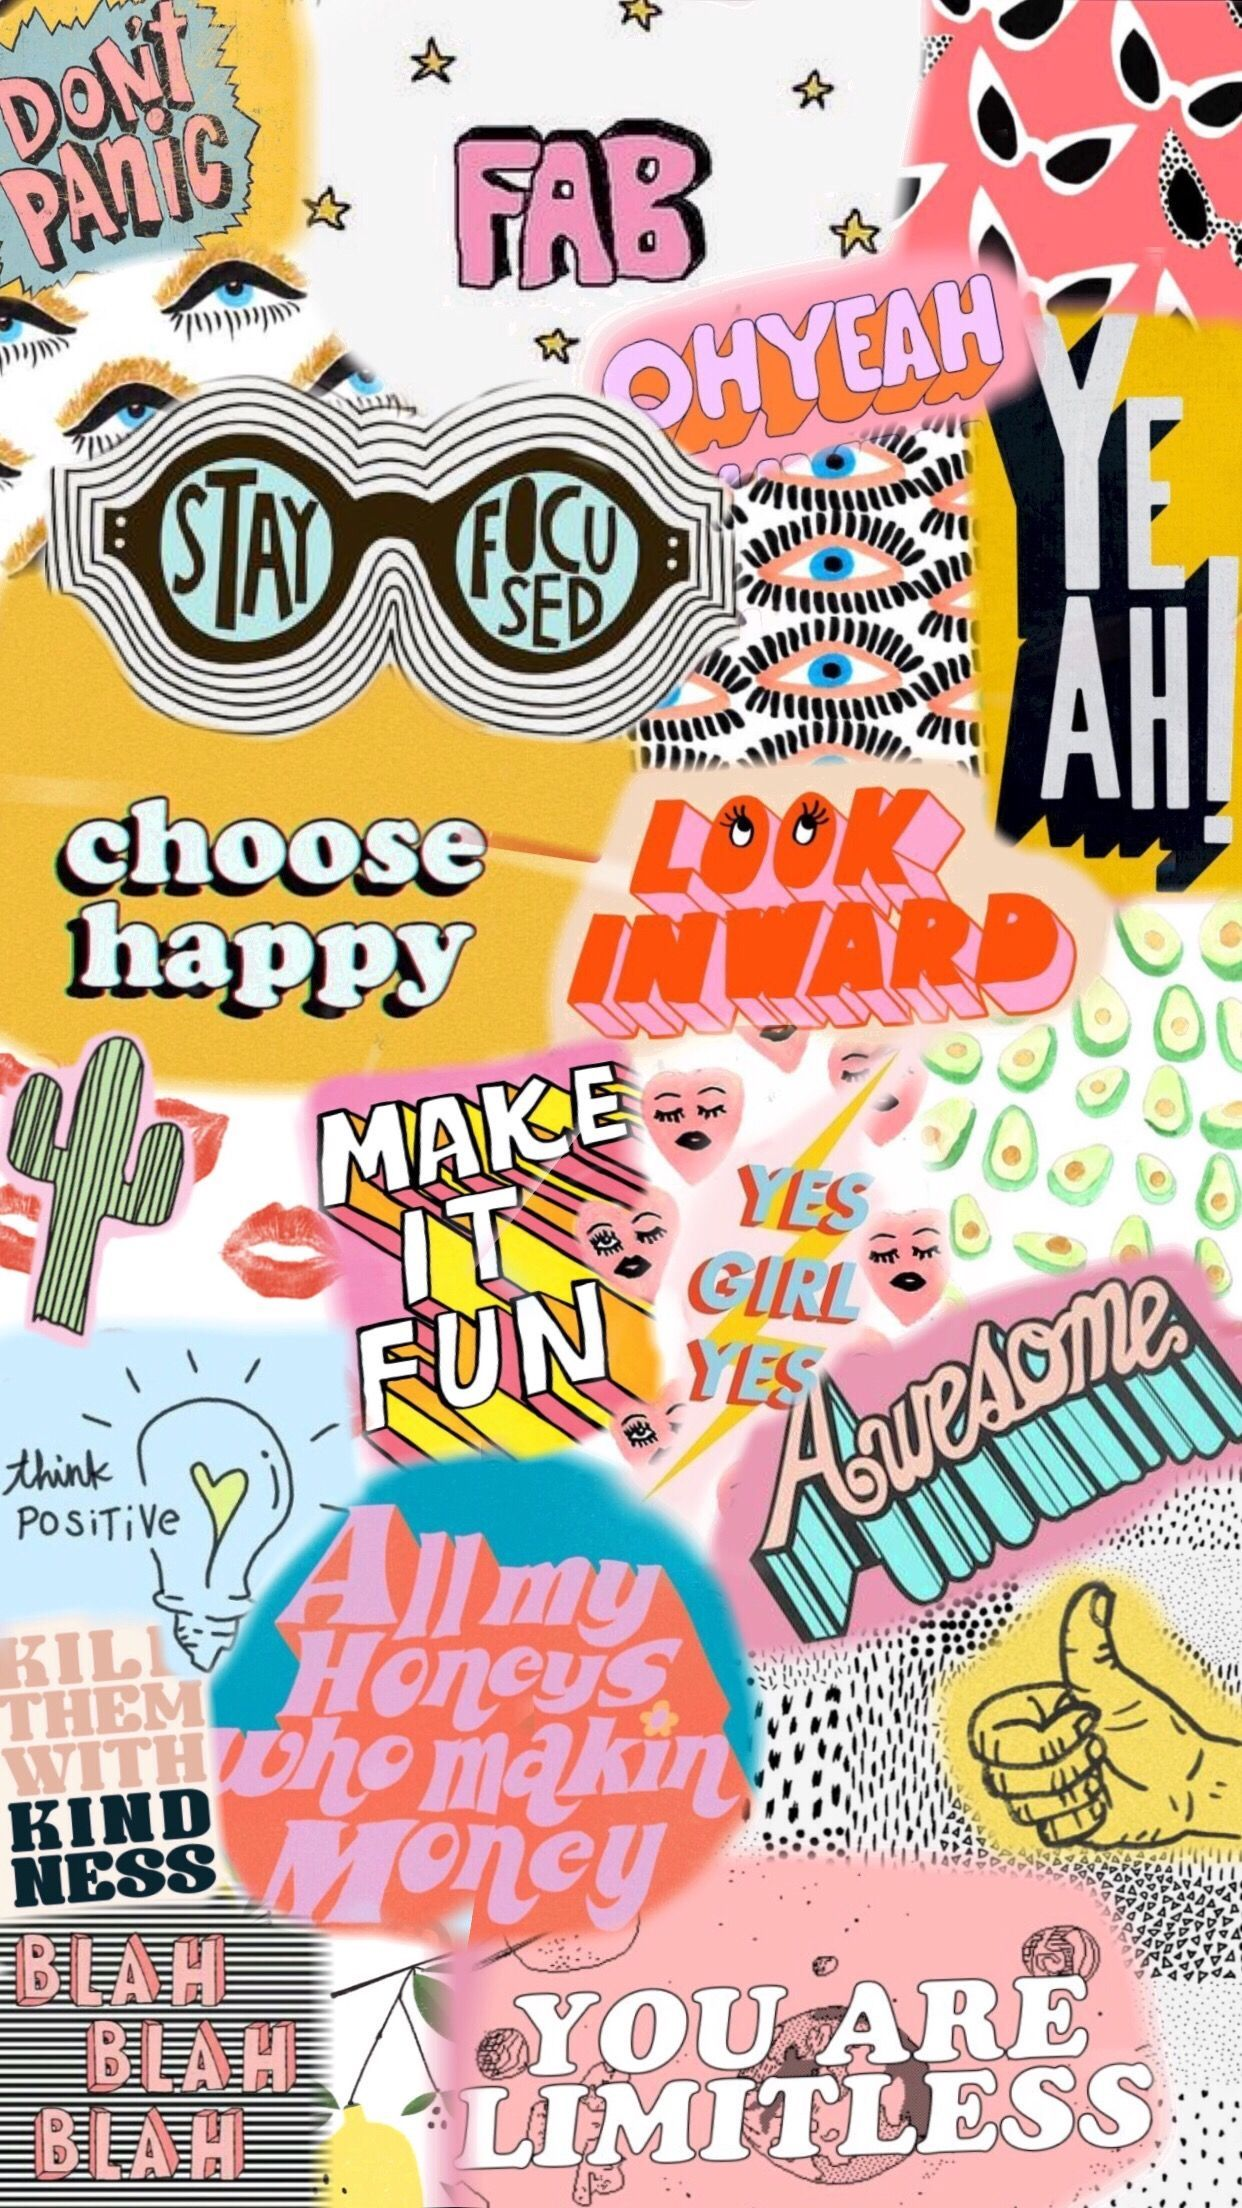 Aesthetic Cute Vsco Wallpaper Quotes About God | outdoor satu